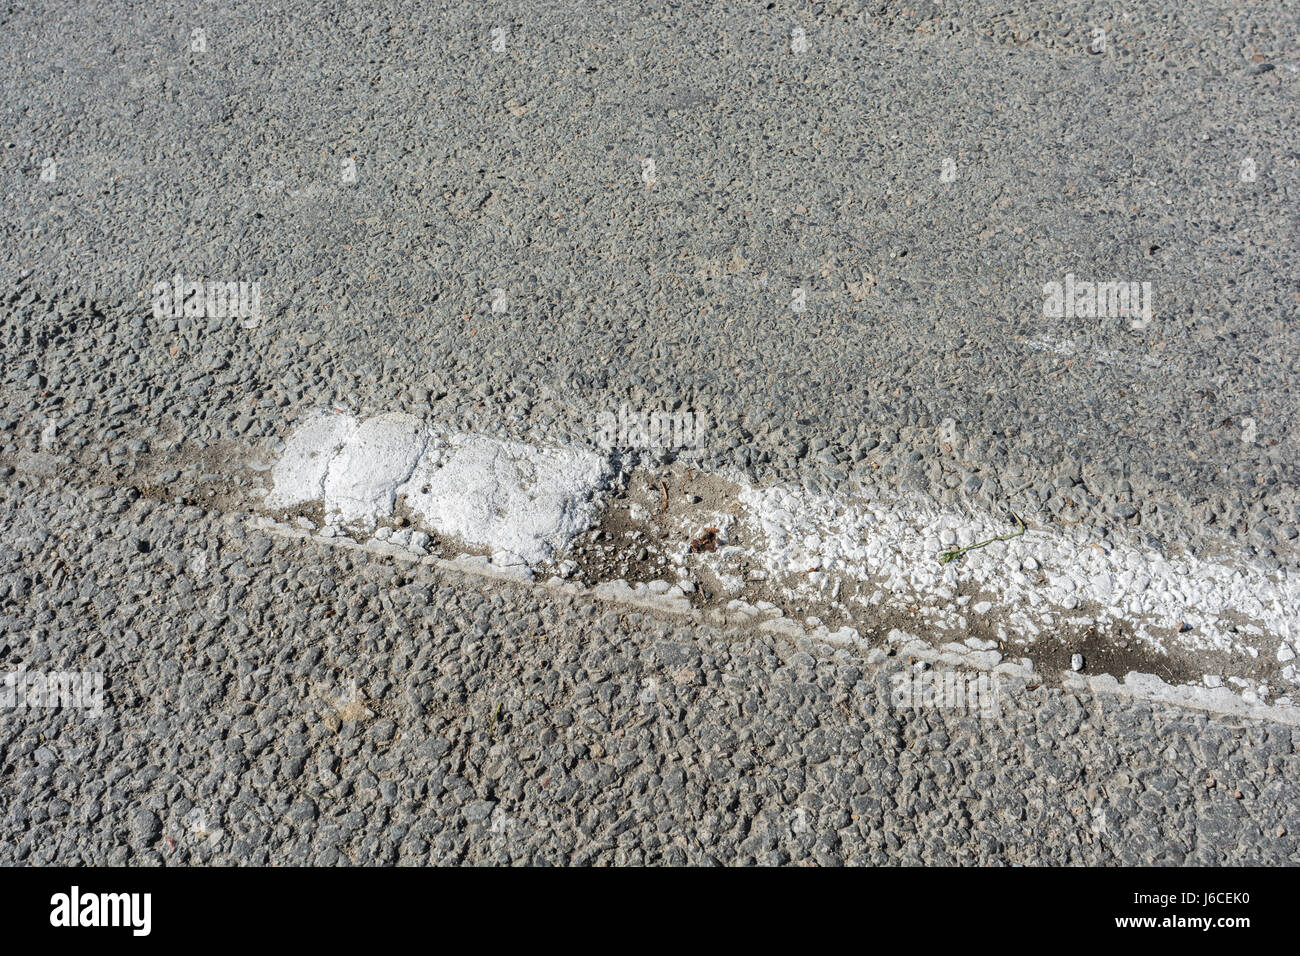 White thermoplastic road marking. Possible  metaphor concept of being at the 'end of the line'. Stock Photo